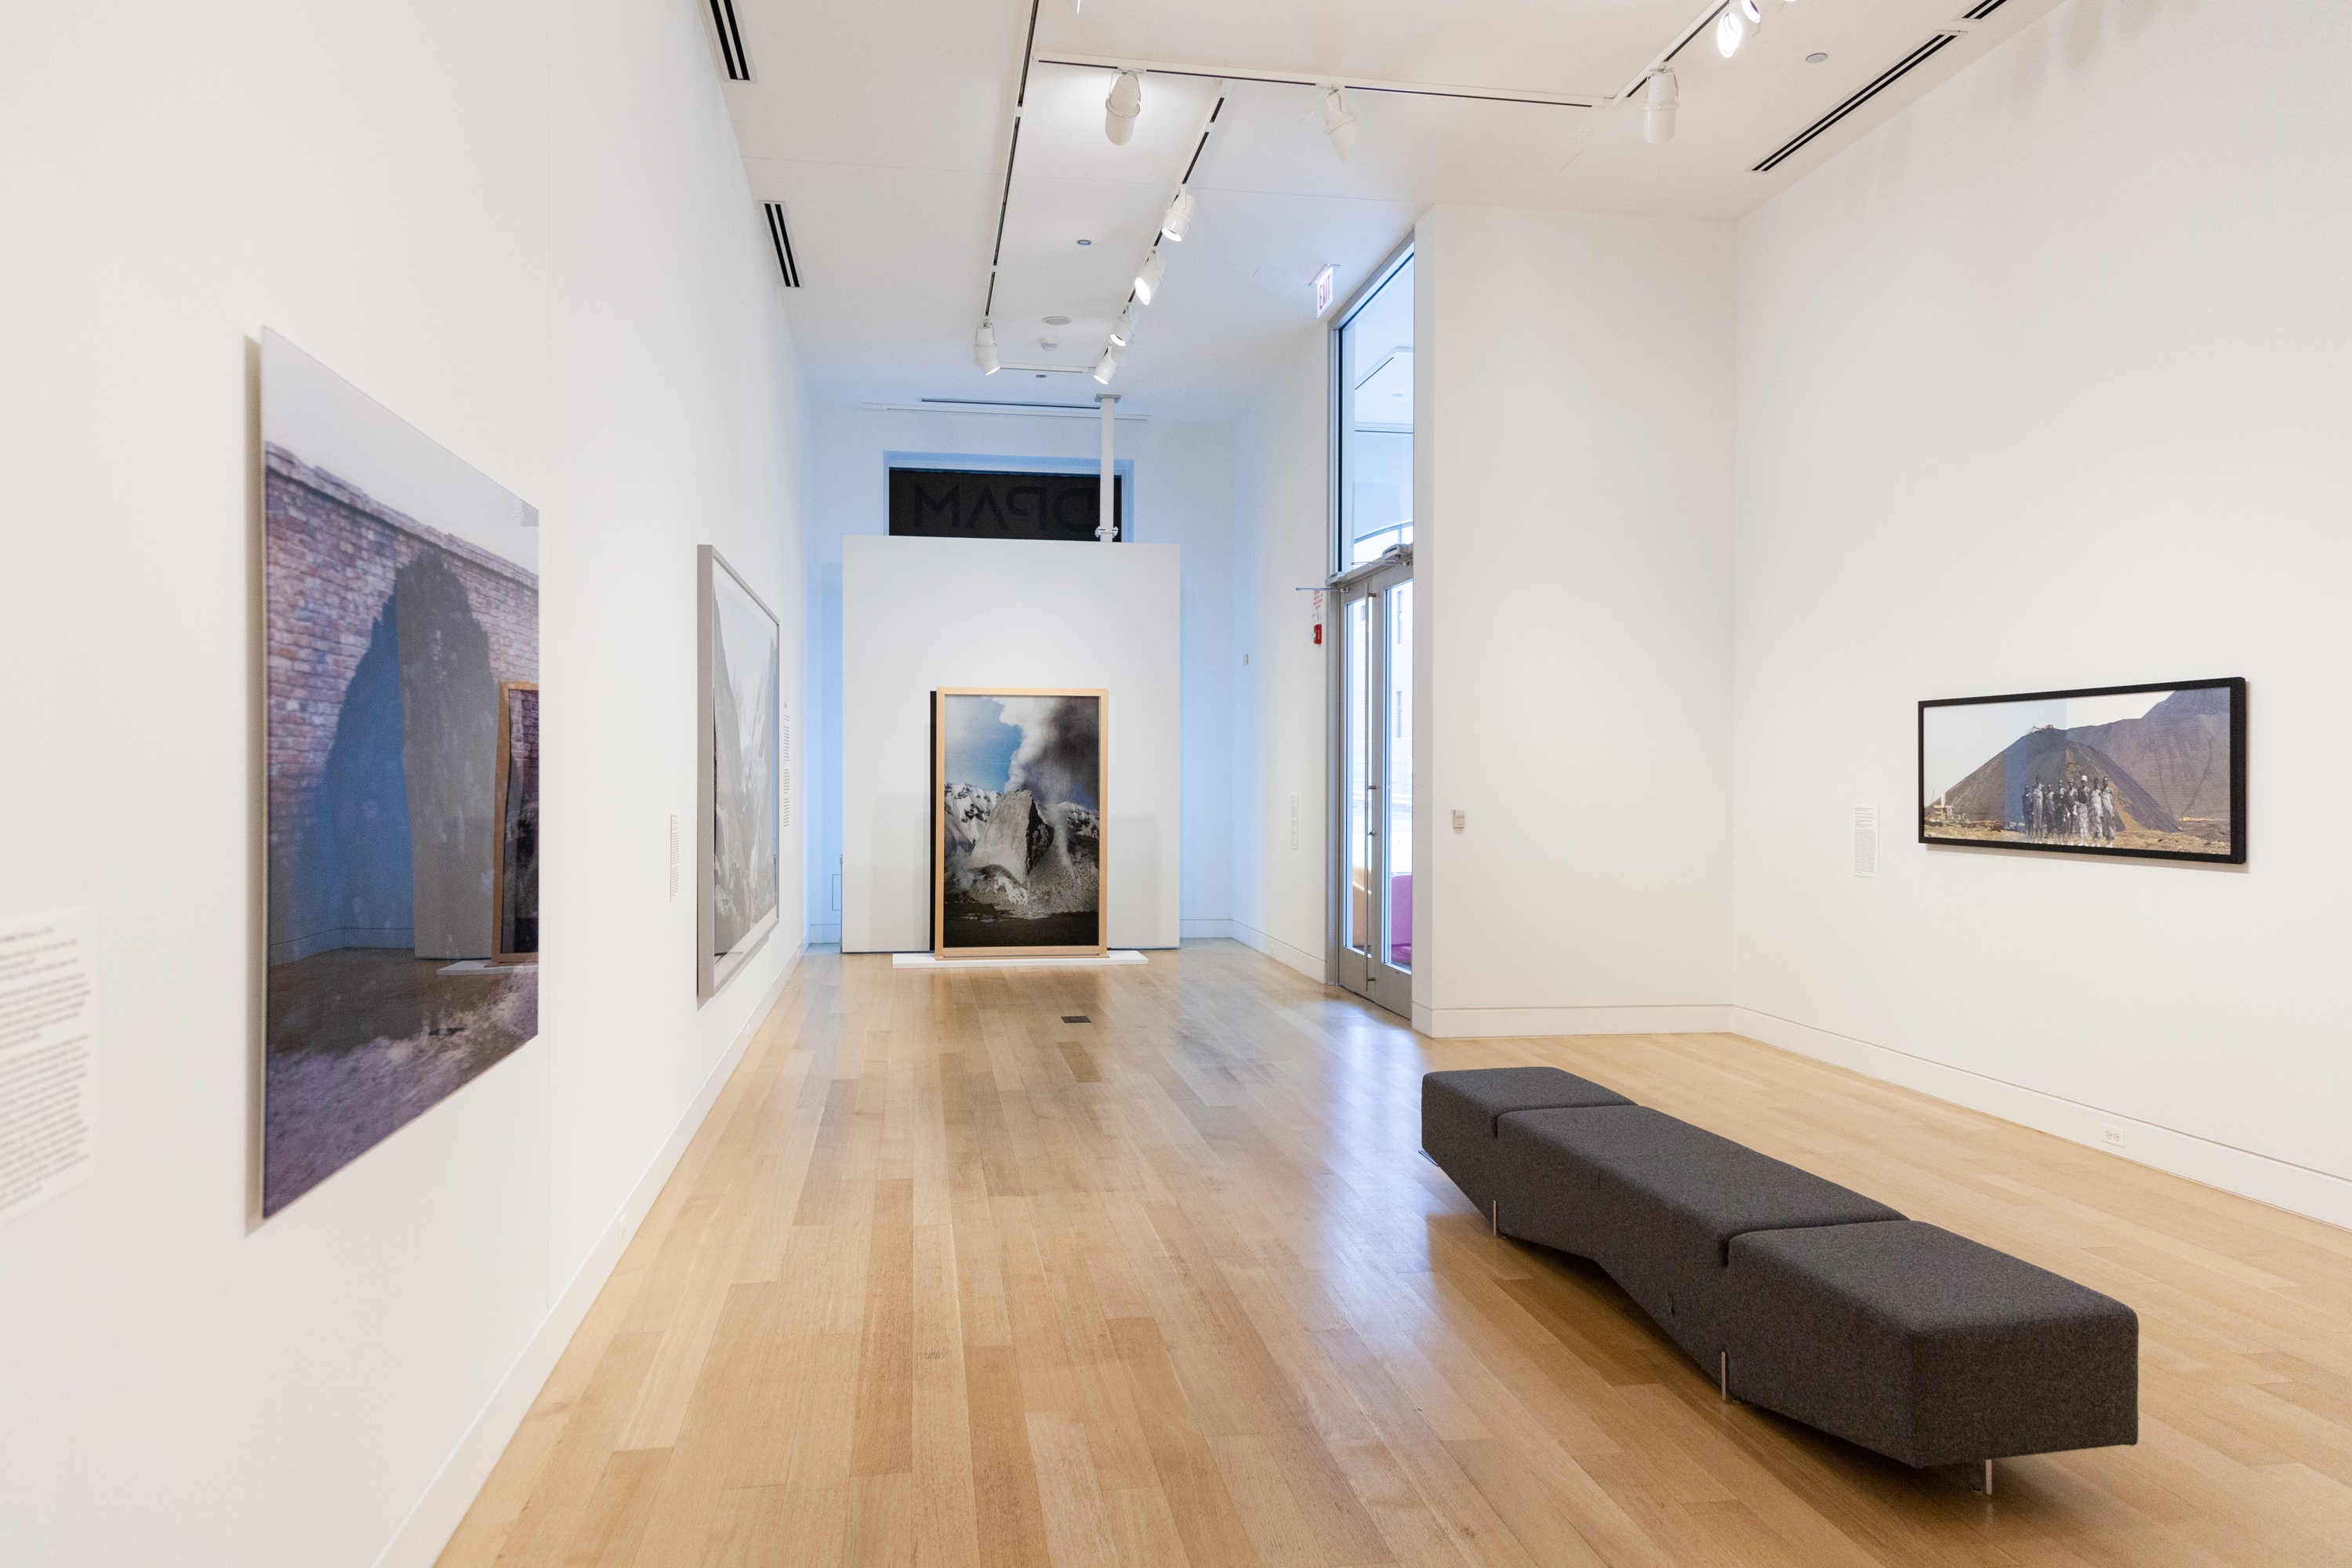 Installation view of The World to Come: Art in the Age of the Anthropocene